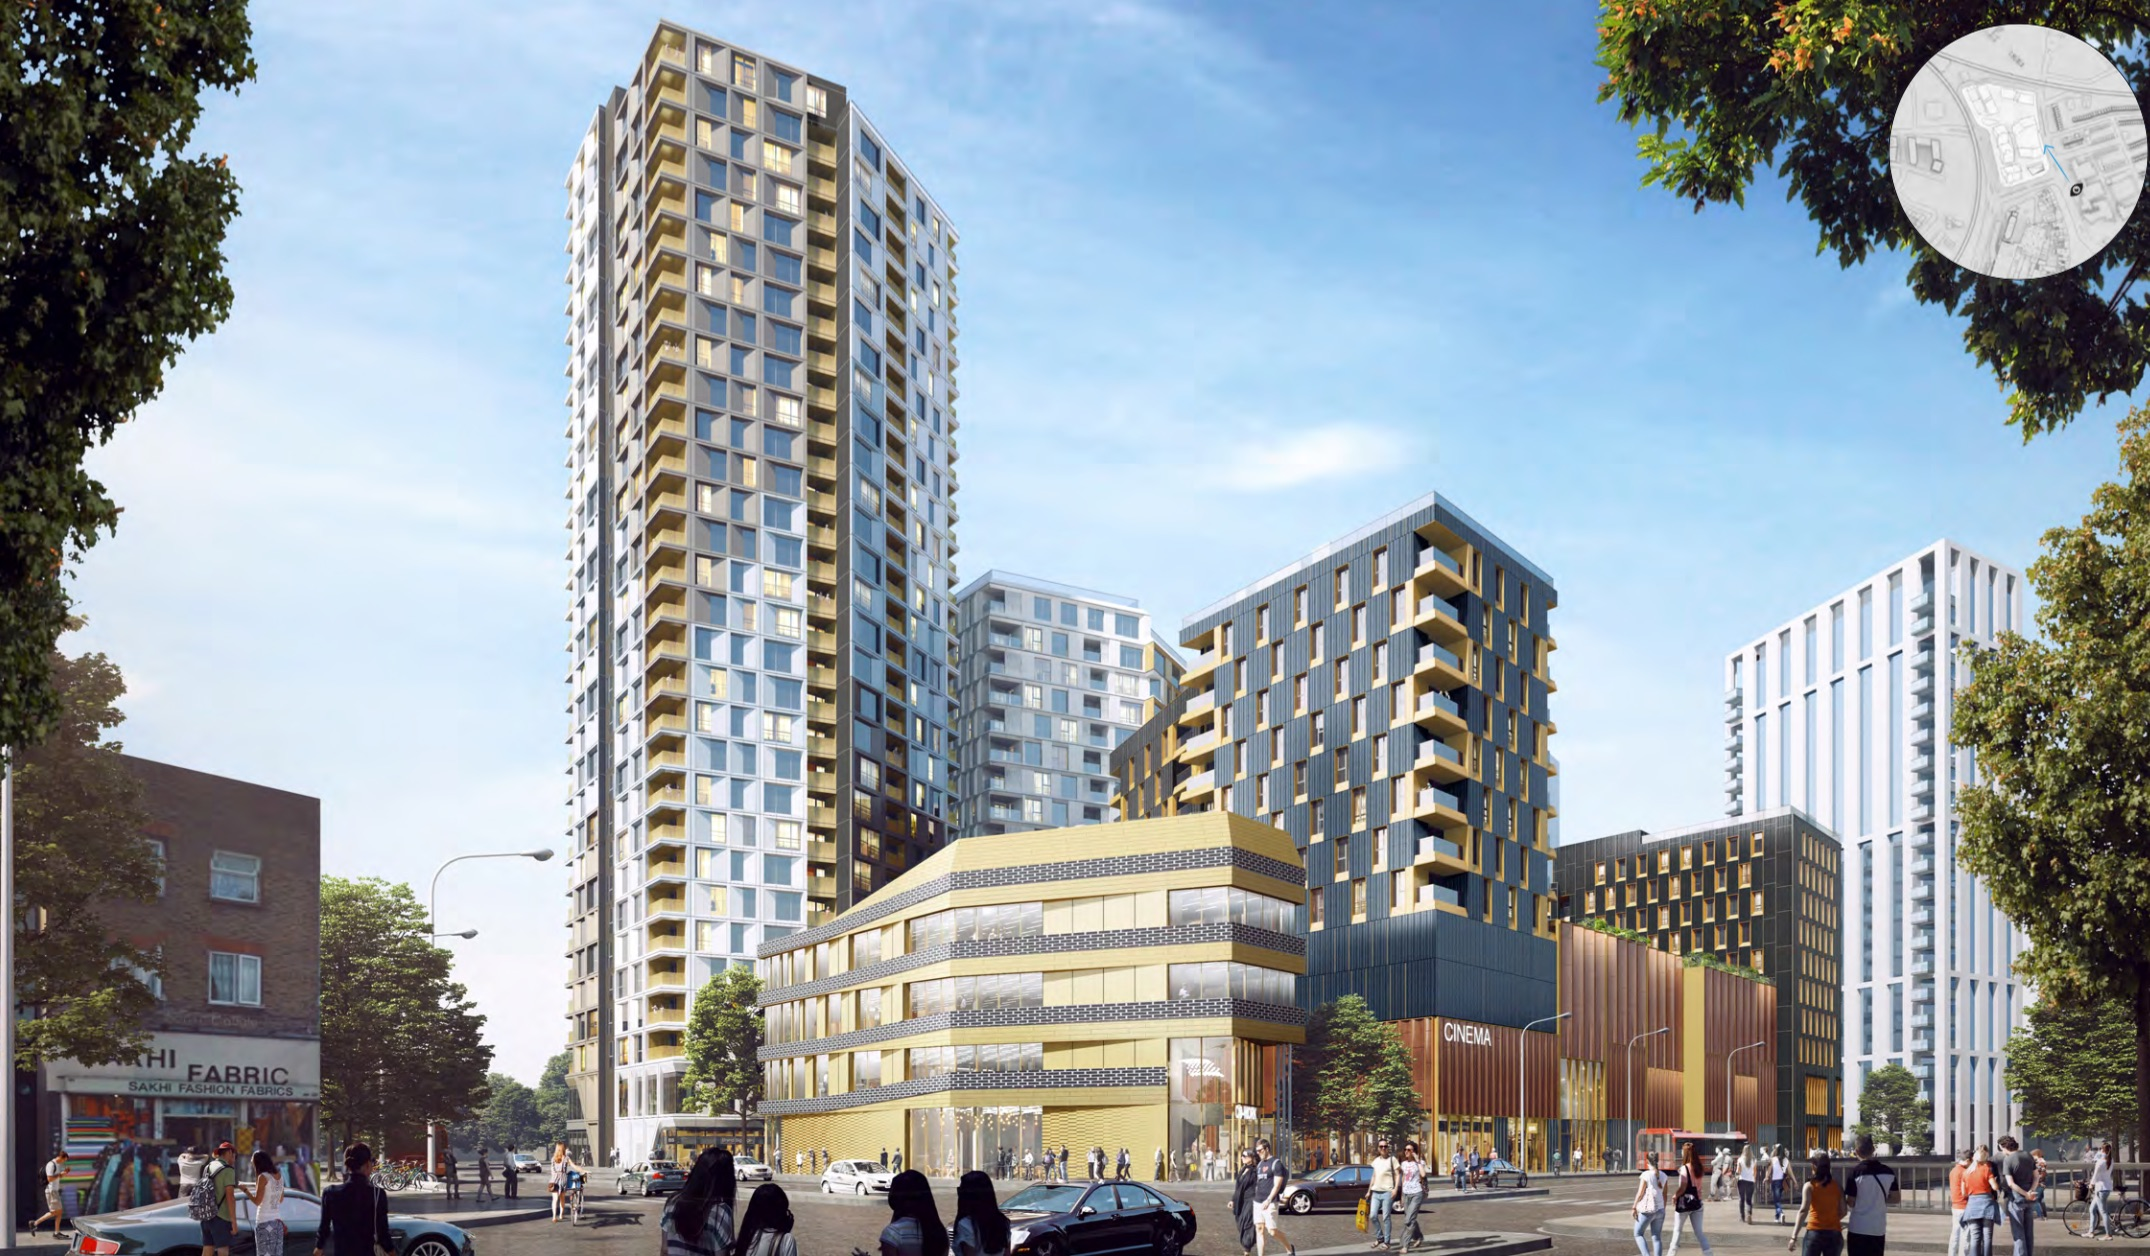 30-storey Lewisham Gateway phase two to begin in autumn – despite councillors' concerns